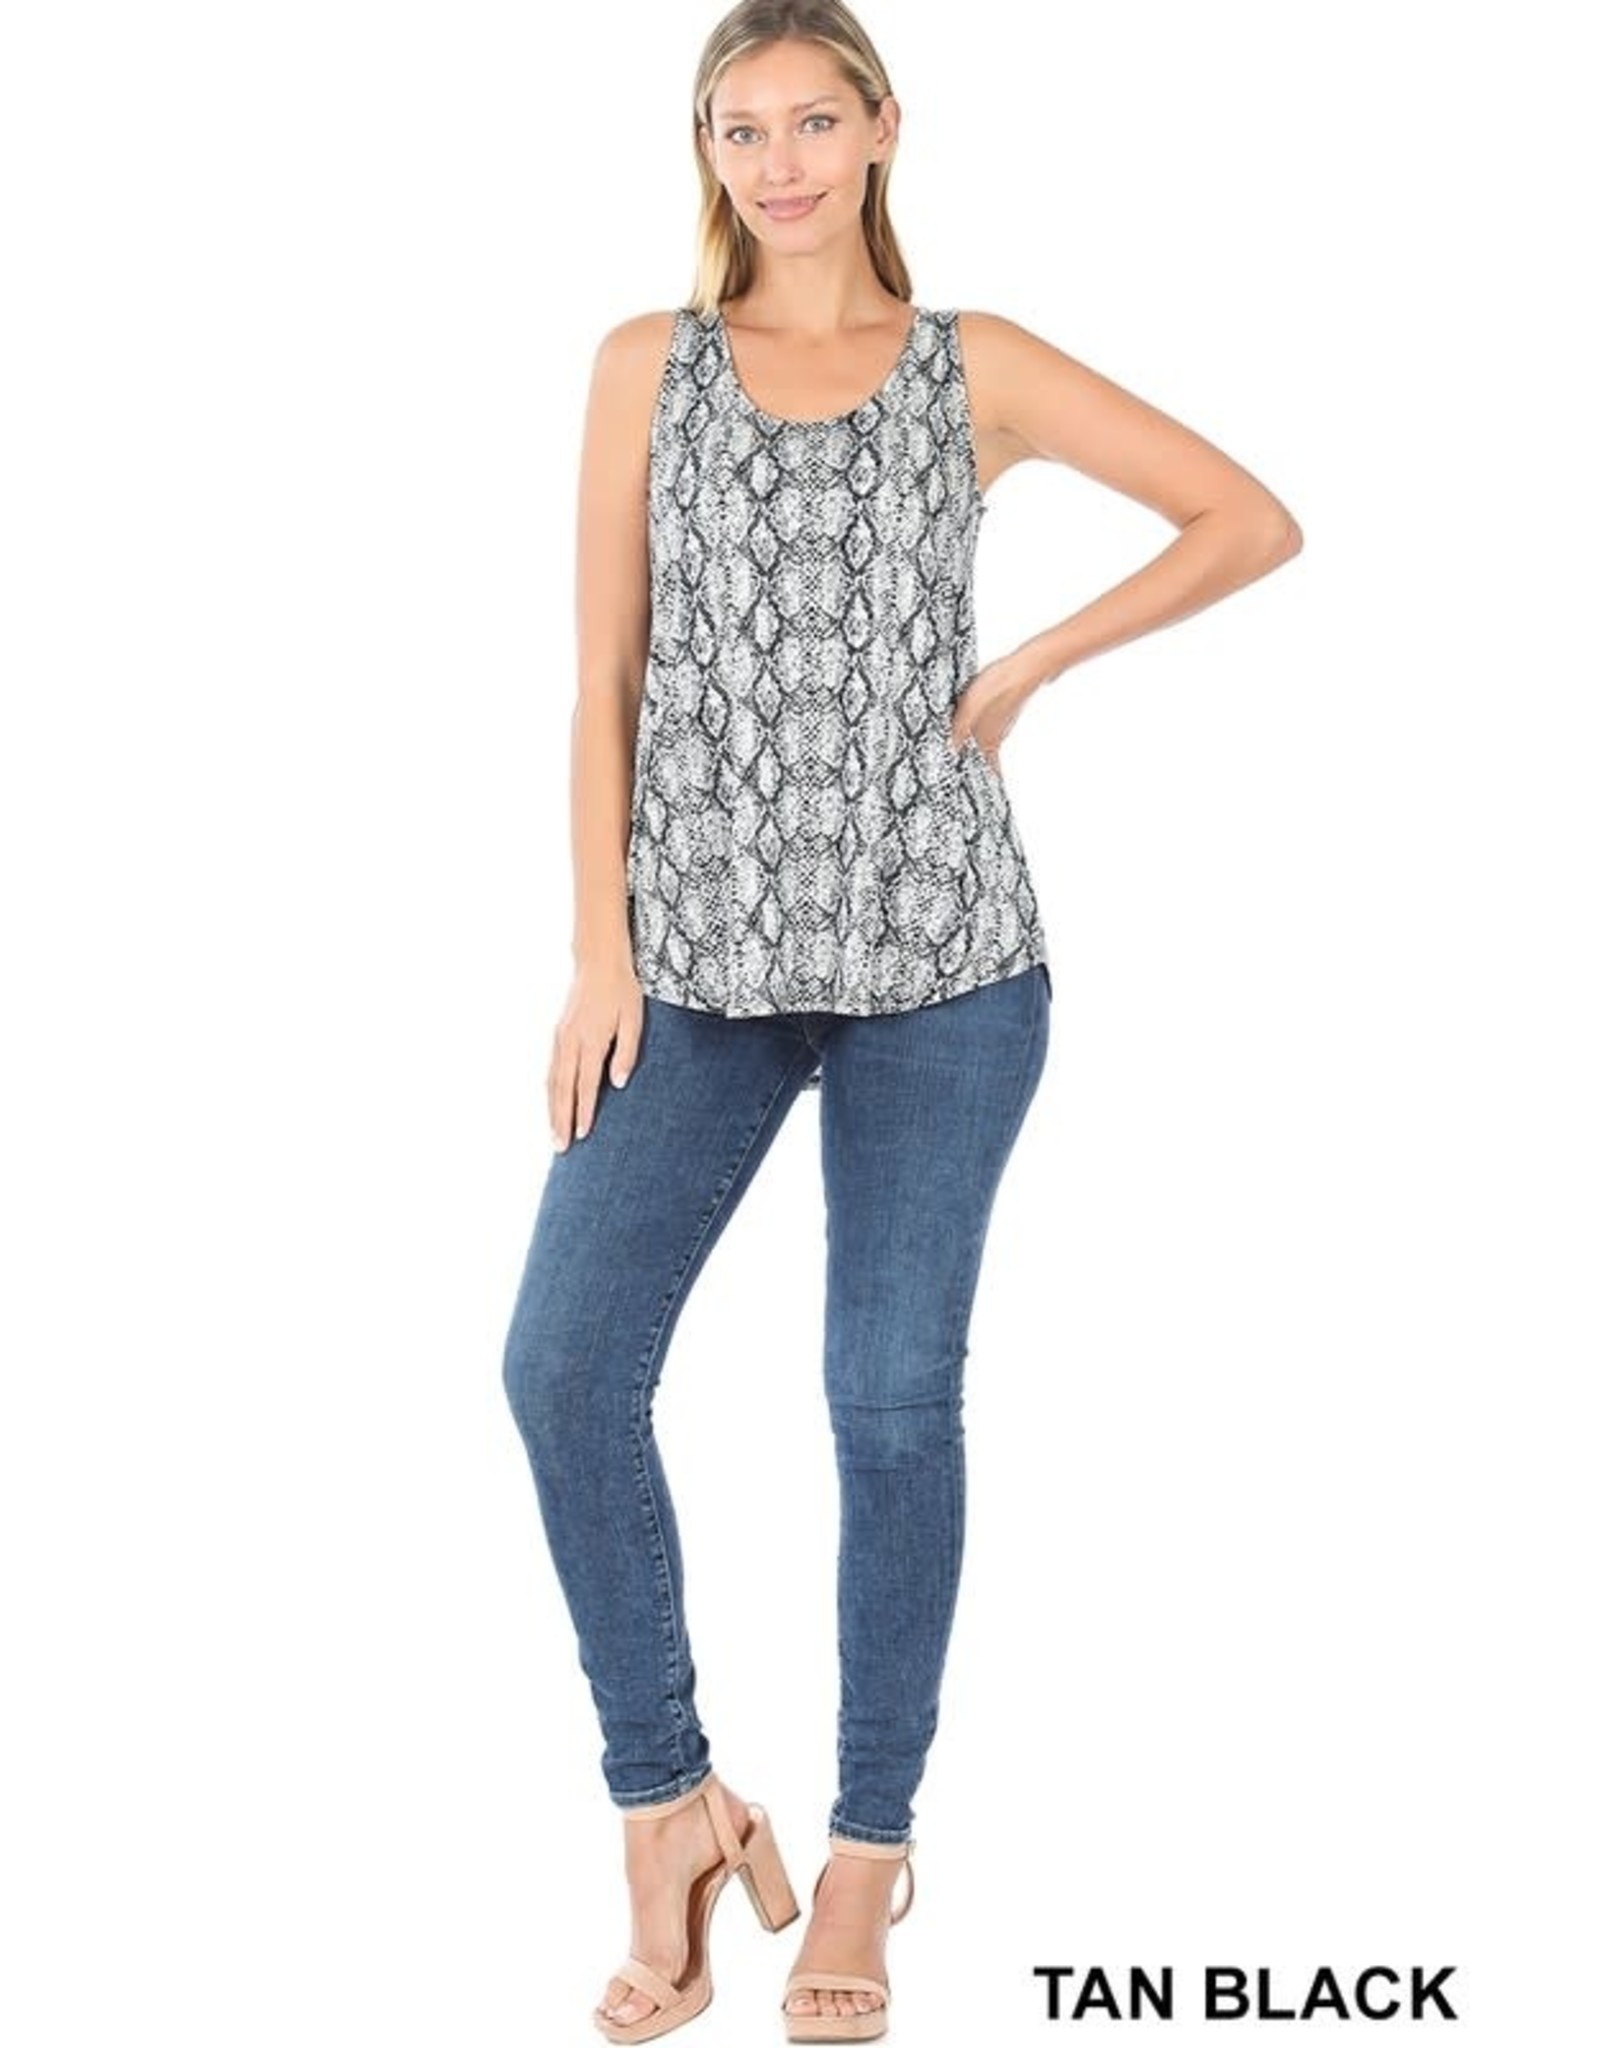 The Ritzy Gypsy ANDIE Snake Skin Sleeveless Top